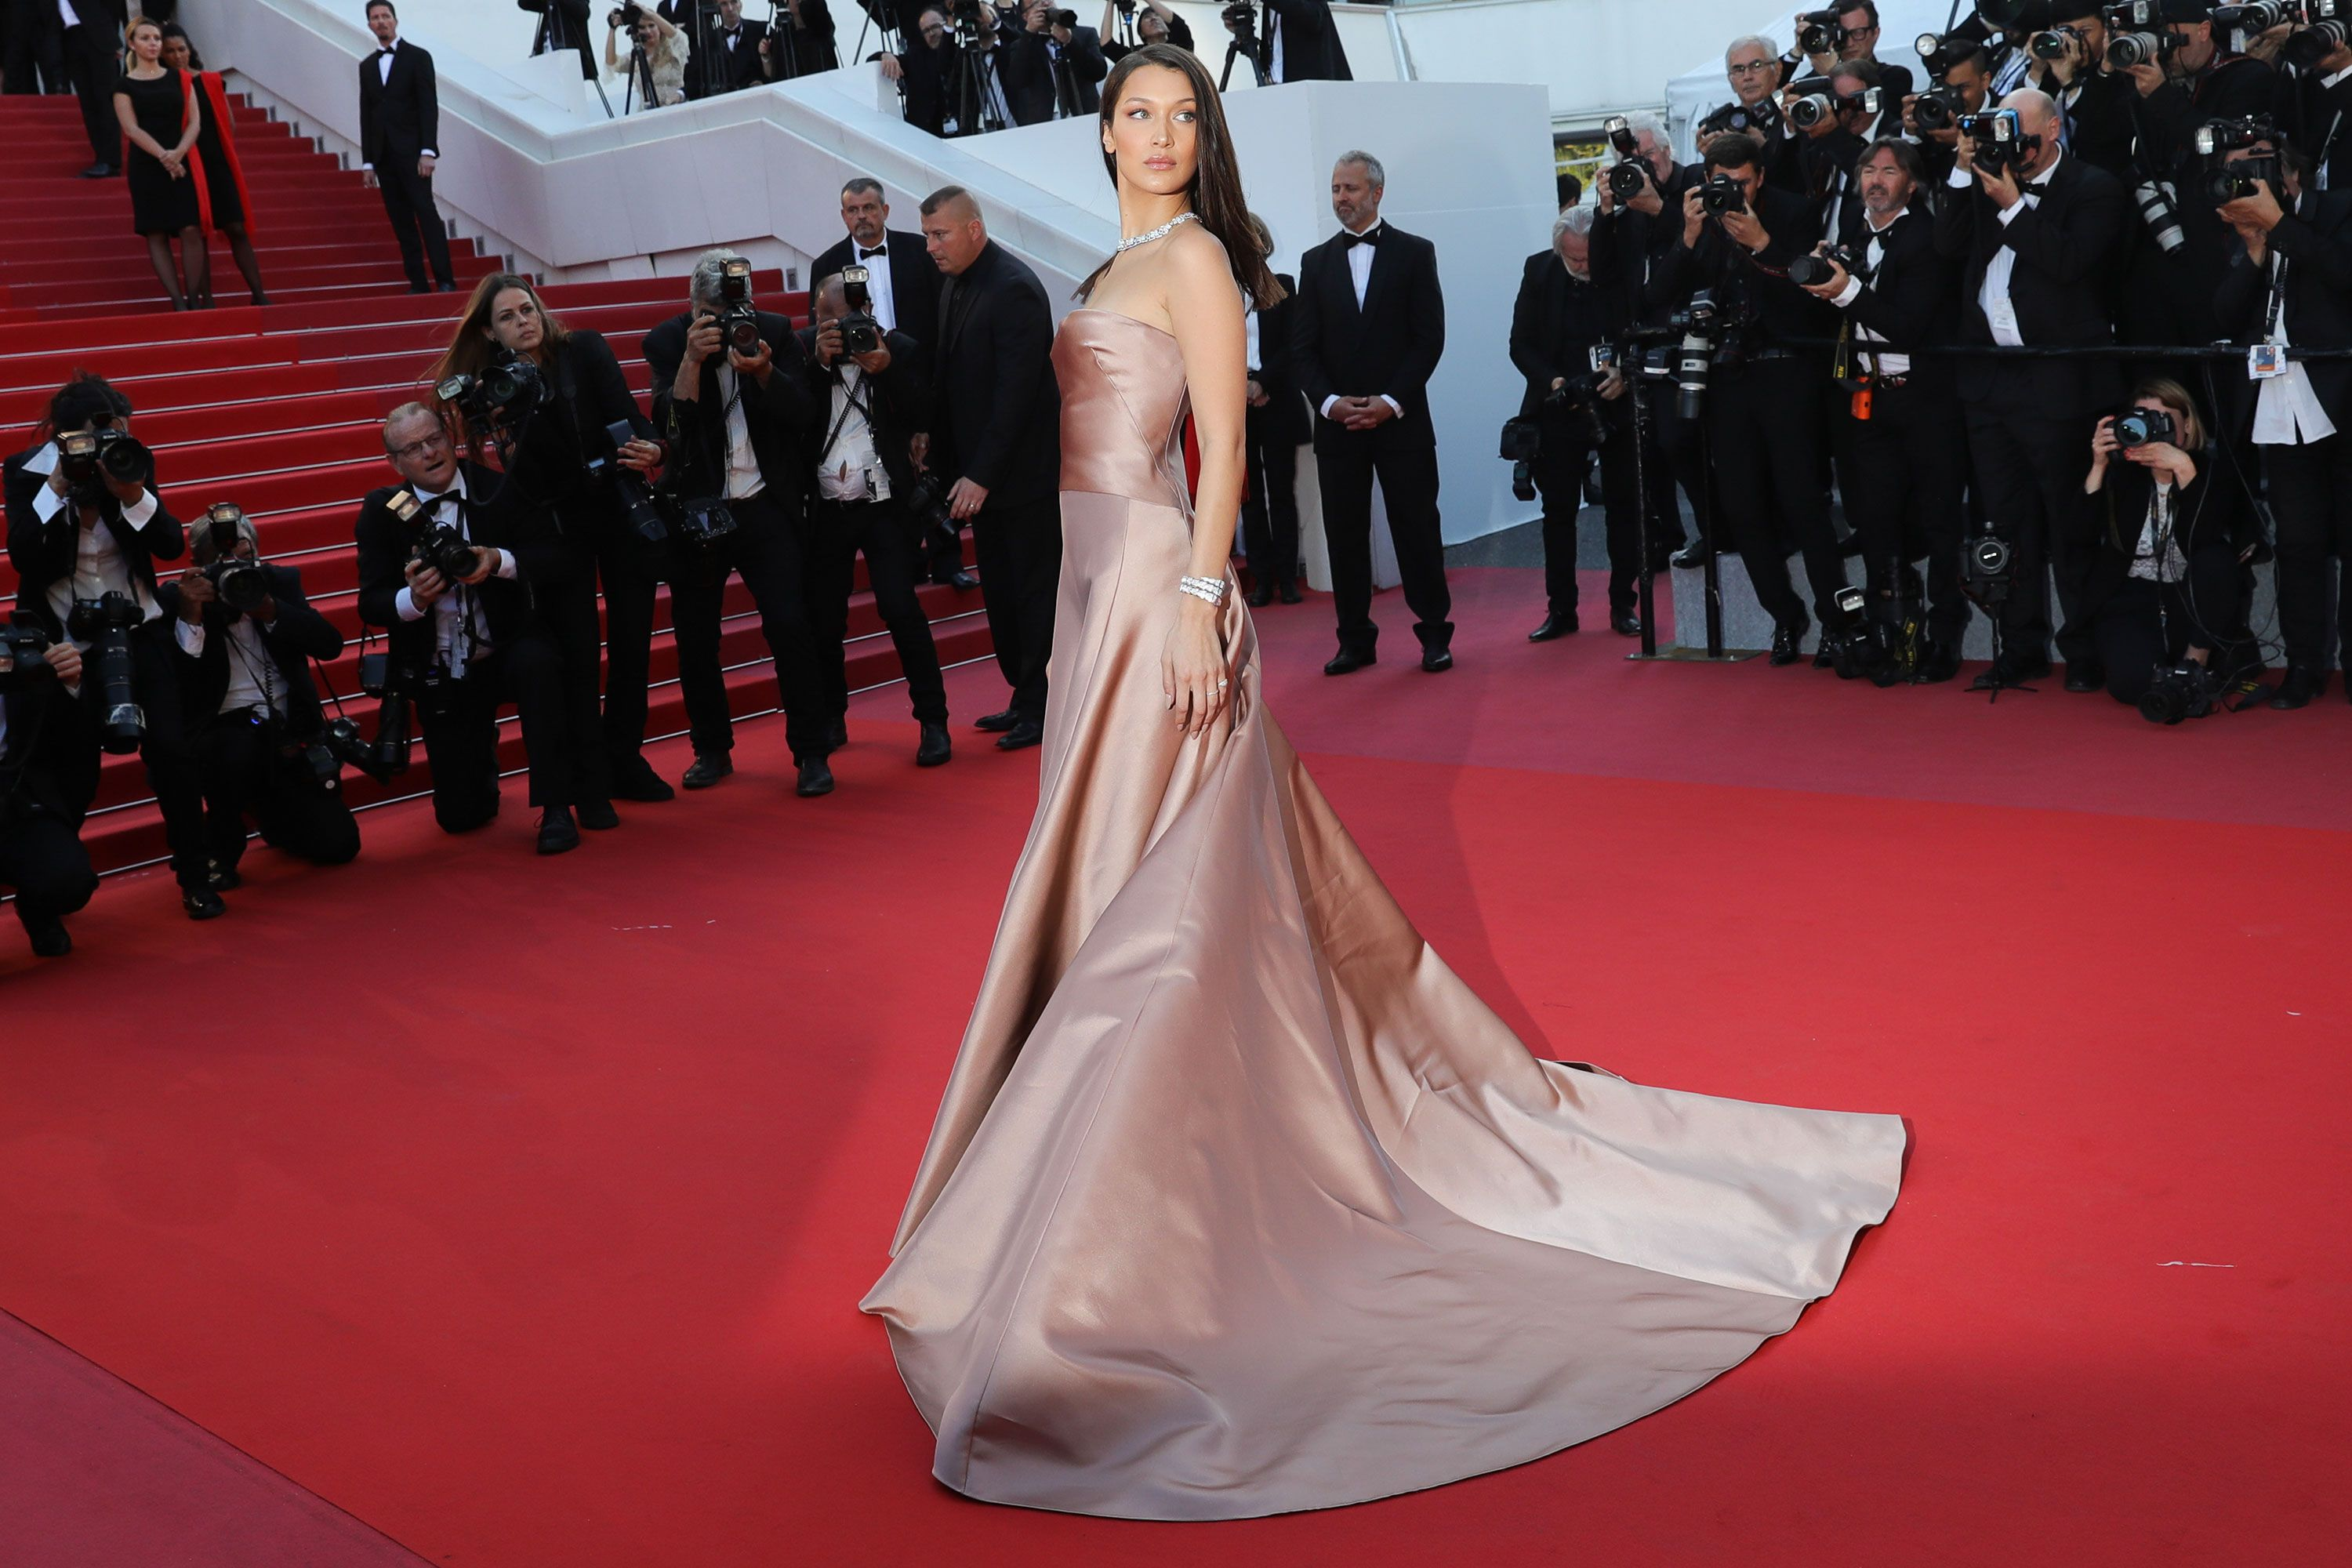 91 Best Cannes Fashion images | Fashion